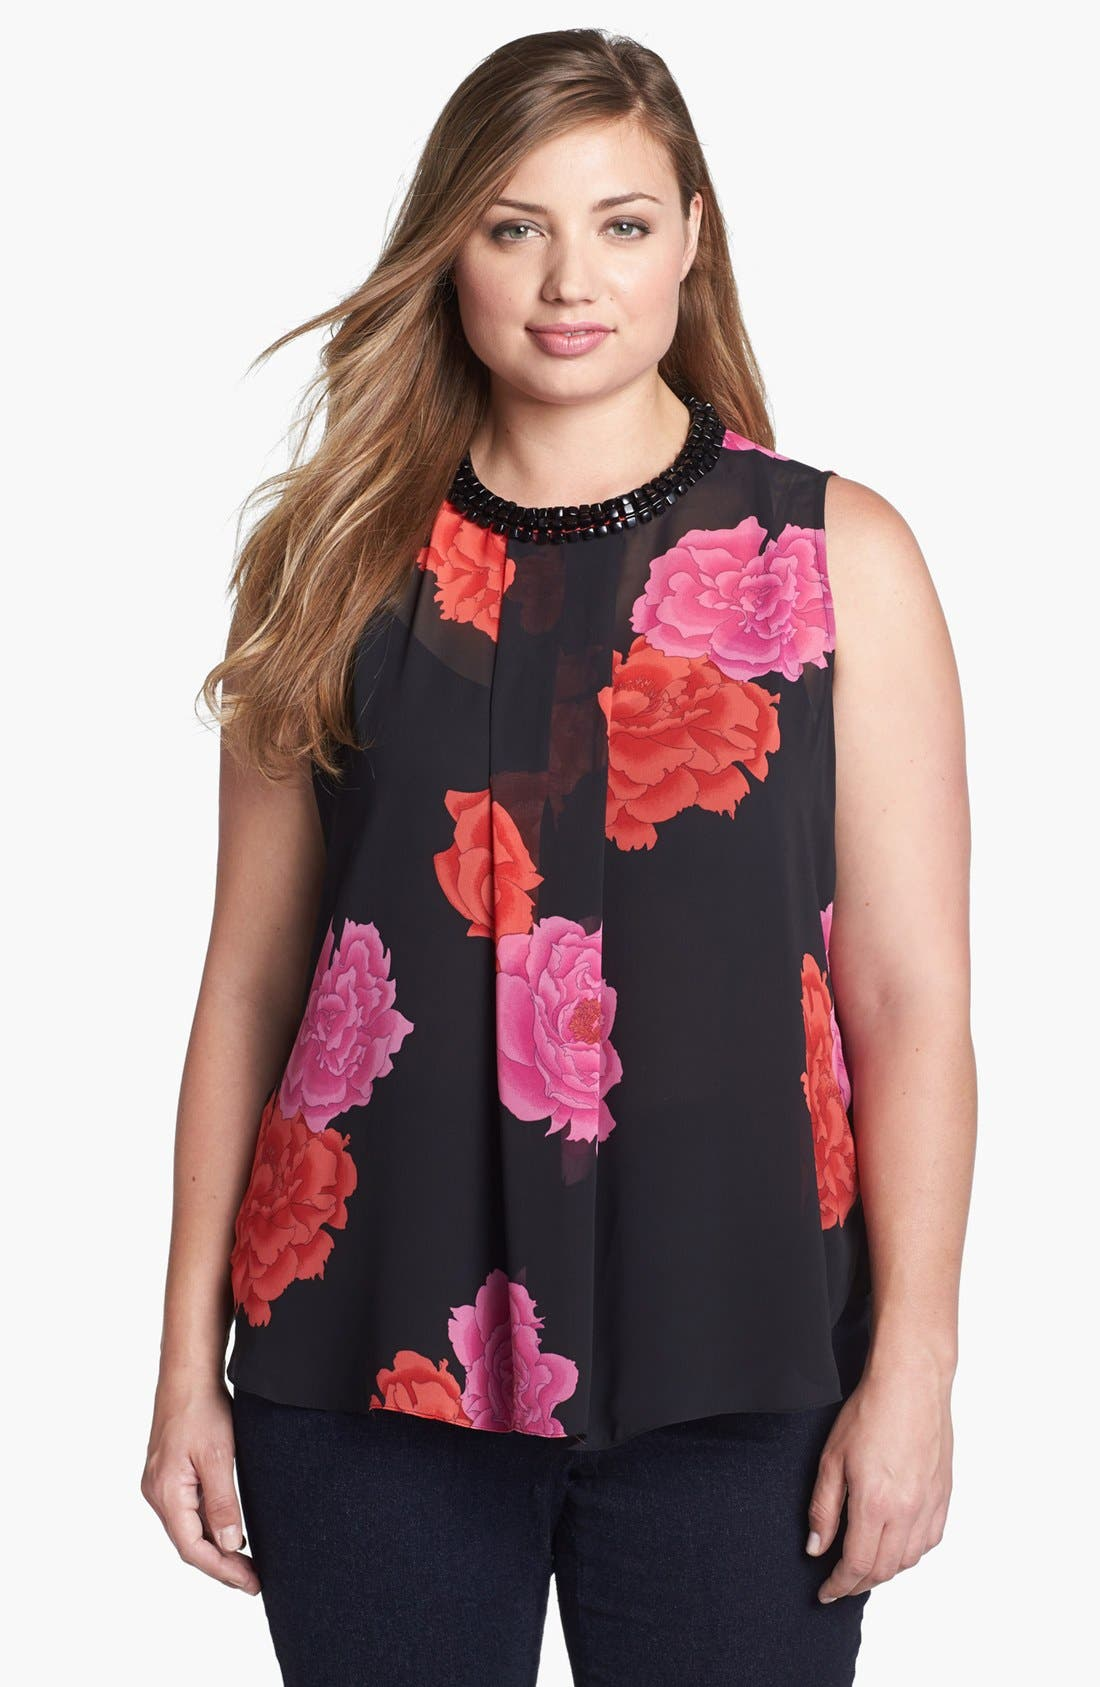 Alternate Image 1 Selected - Vince Camuto 'Peonies' Embellished Blouse (Plus Size)